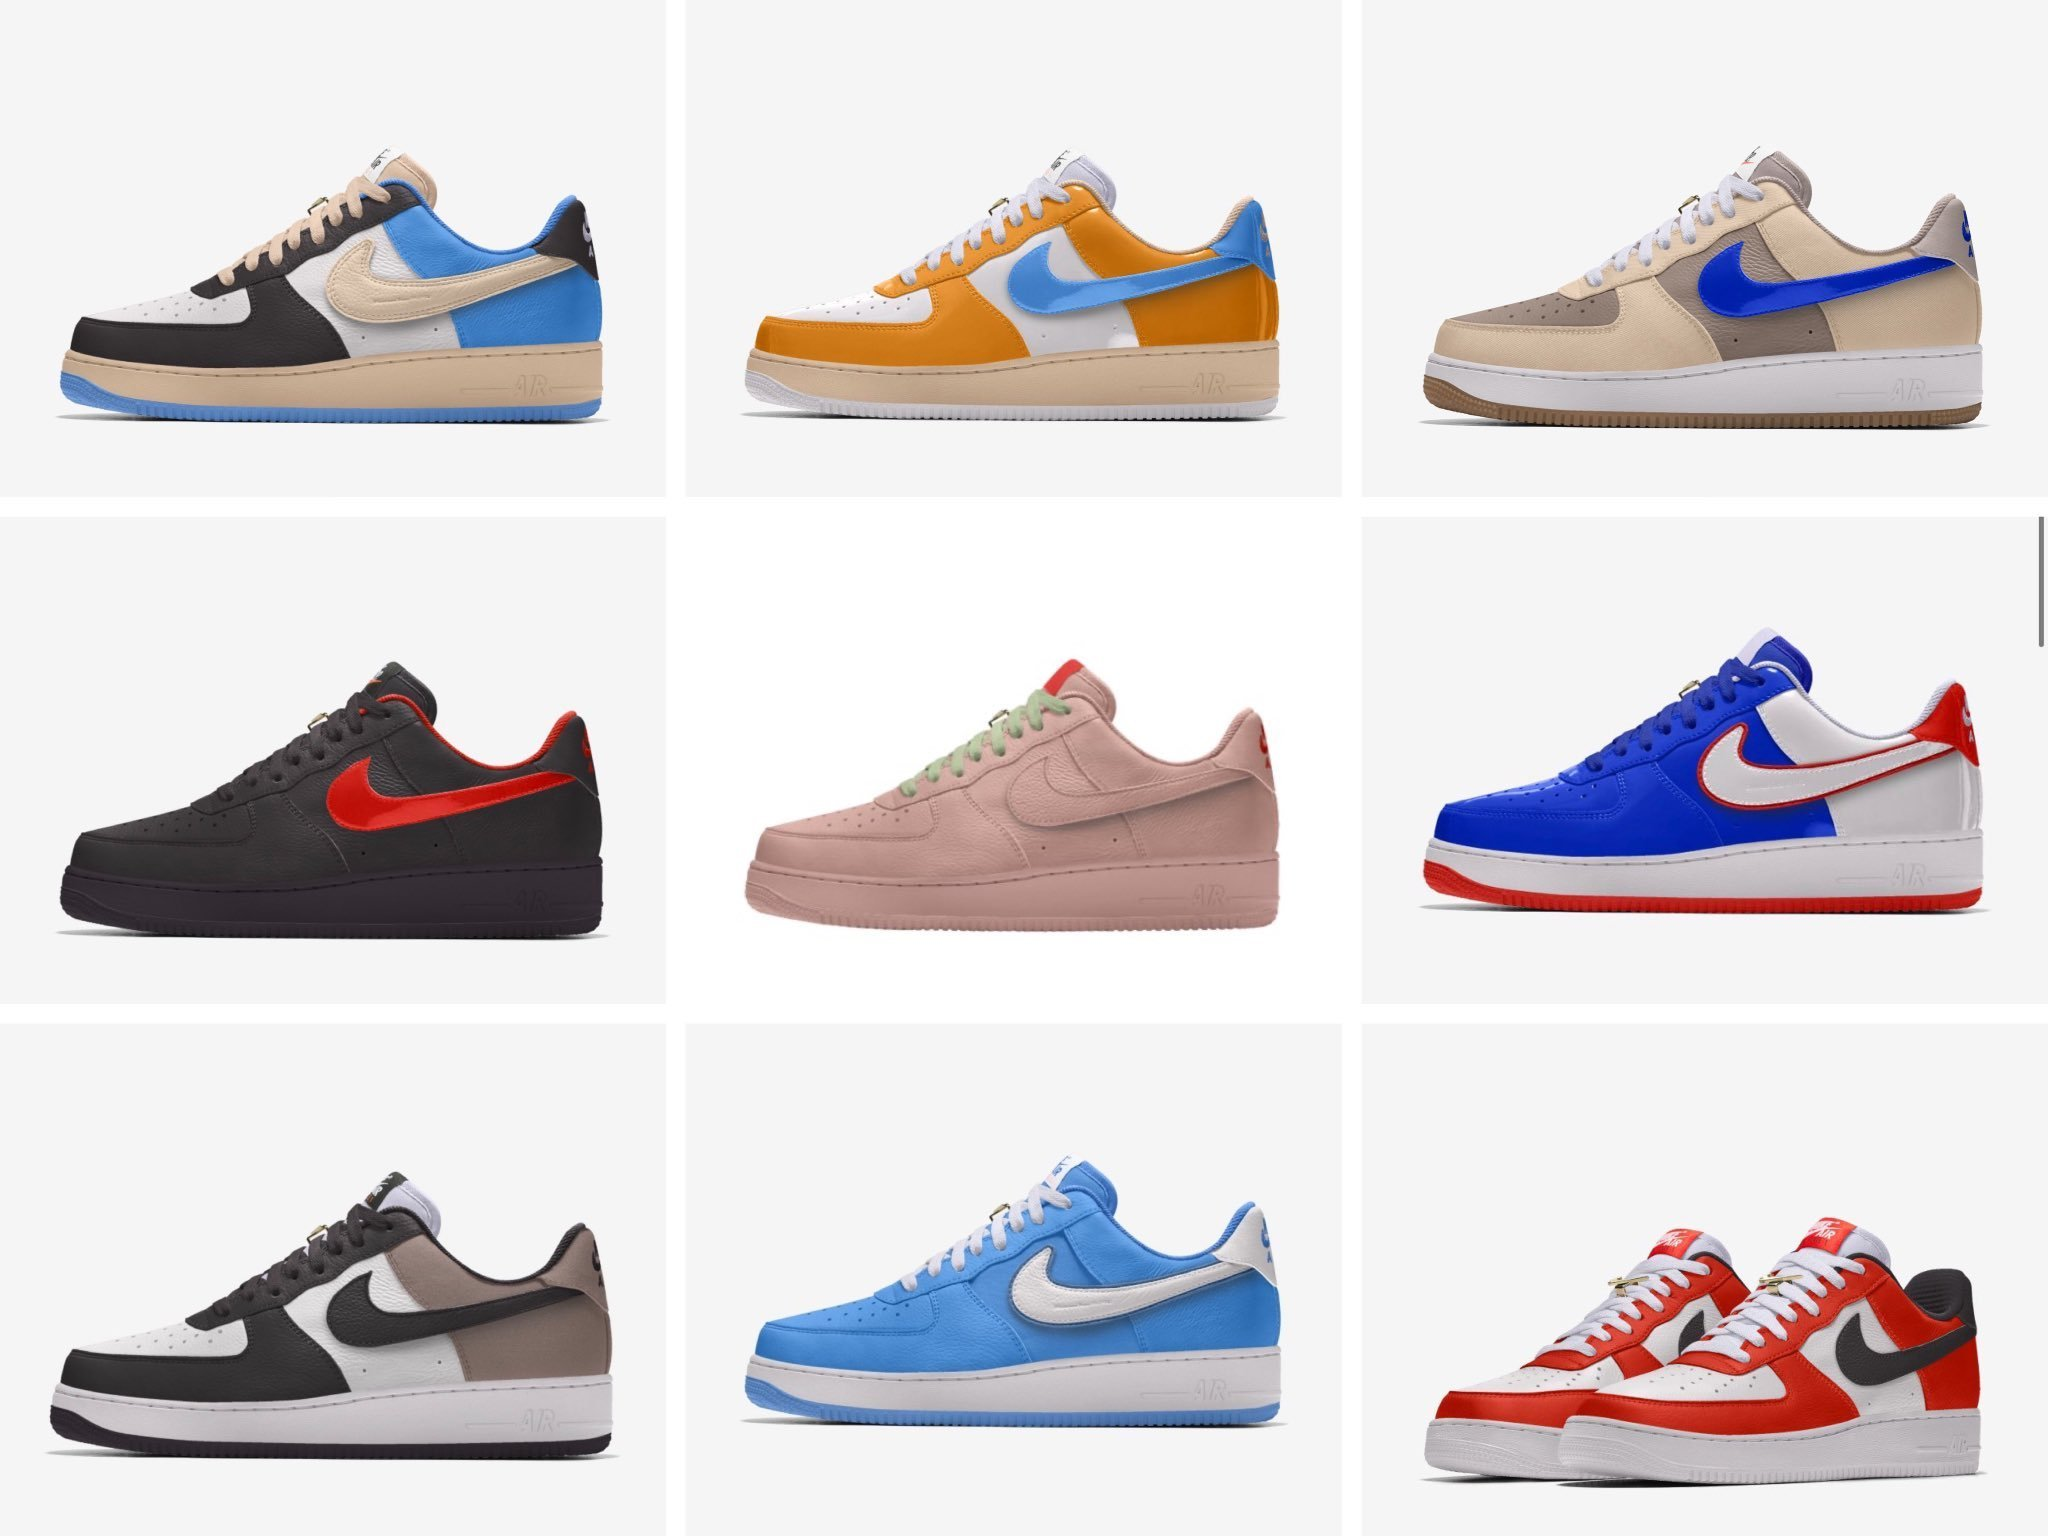 Nike Air Force 1 Unlocked By You 'First Use'